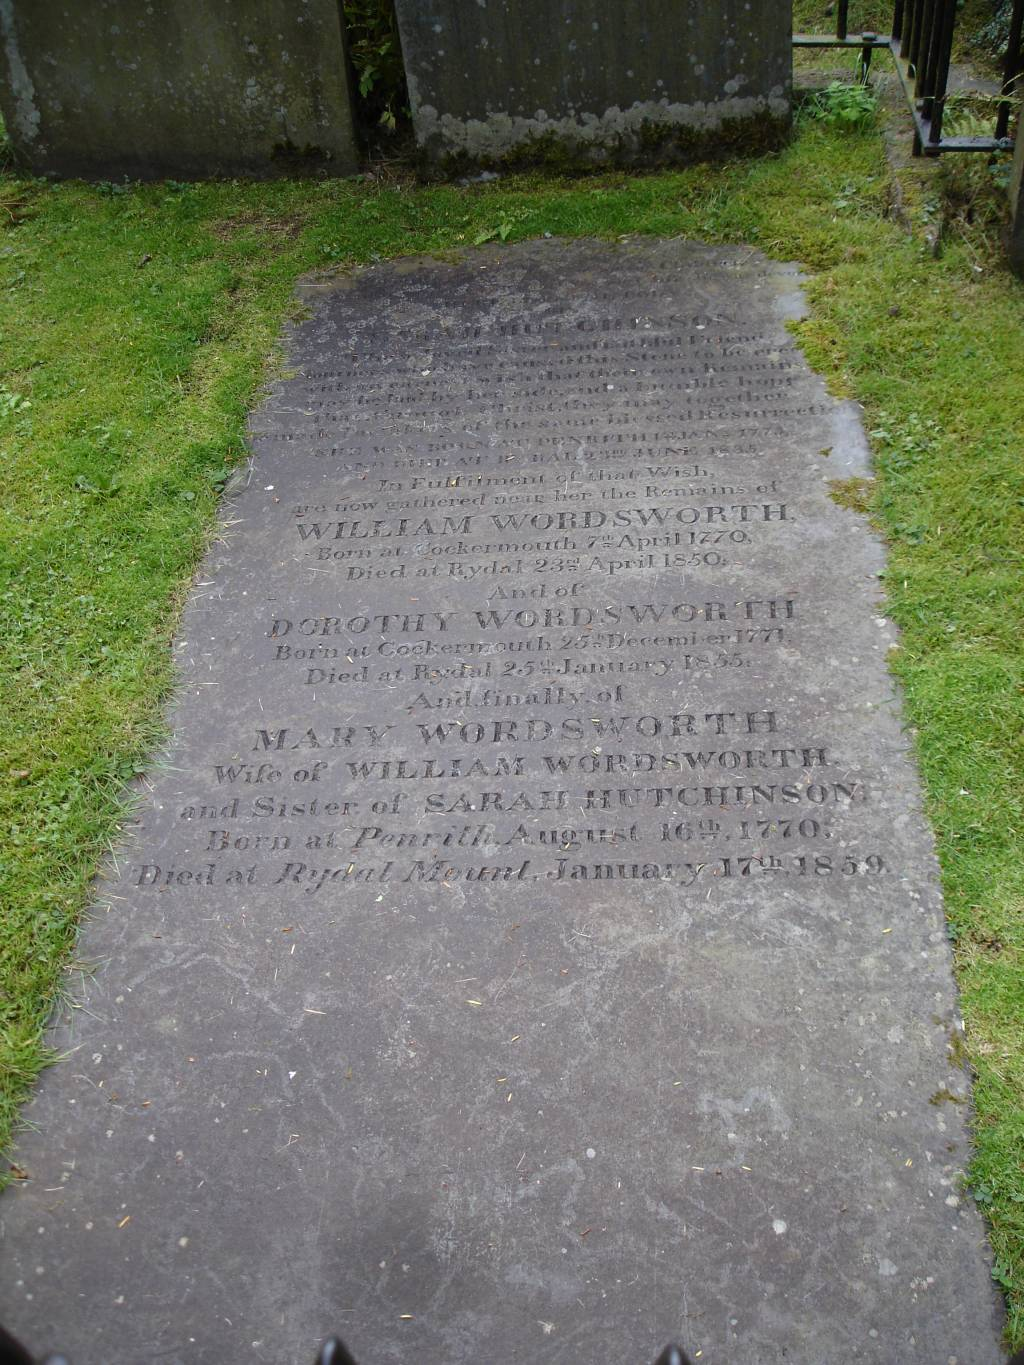 the solitary reaper by william wordsworth poem analysis writework photograph of the gravestone of william wordsworth grasmere cumbria england